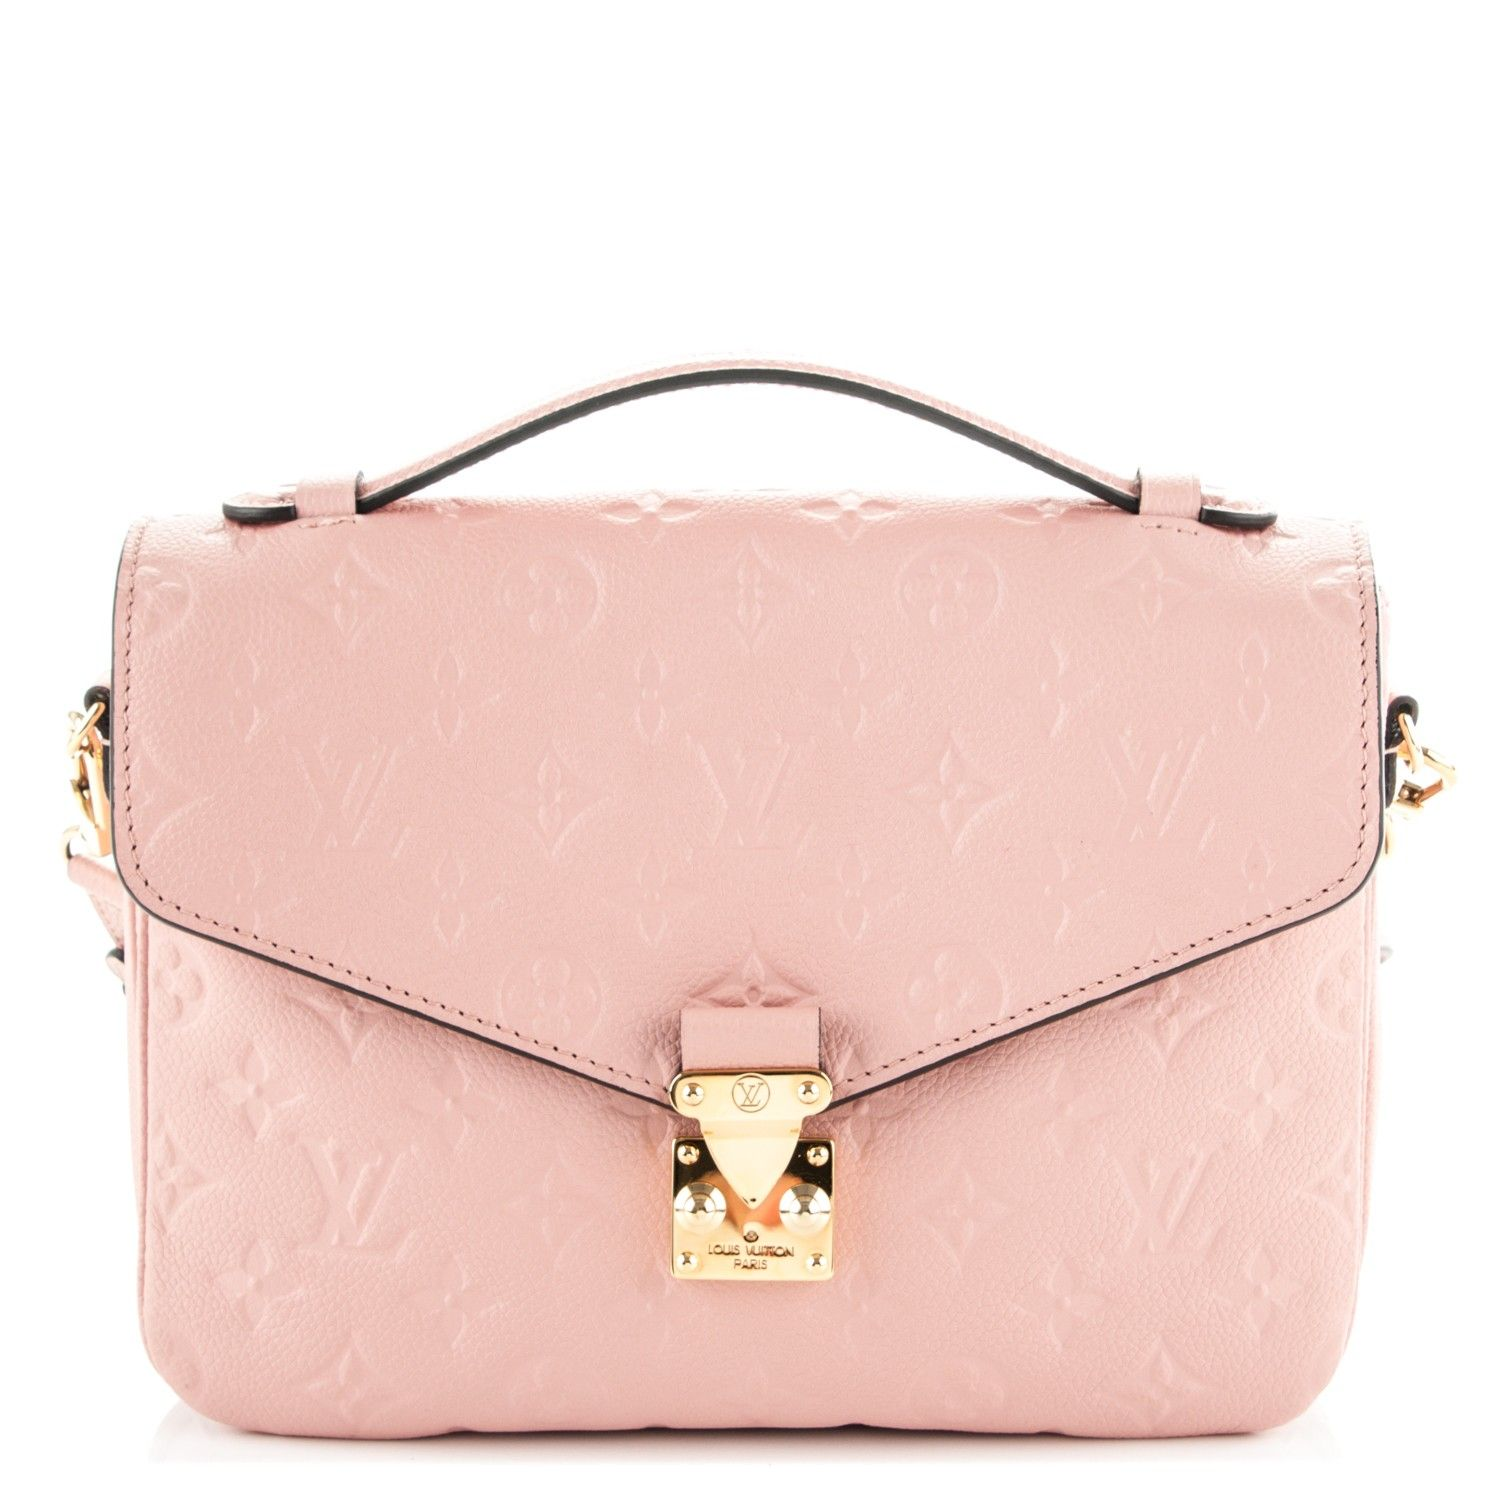 8c5e2be5be39 This is an authentic LOUIS VUITTON Empreinte Pochette Metis in Rose Poudre.  This incredibly popular shoulder bag is finely crafted of classic Monogram  ...